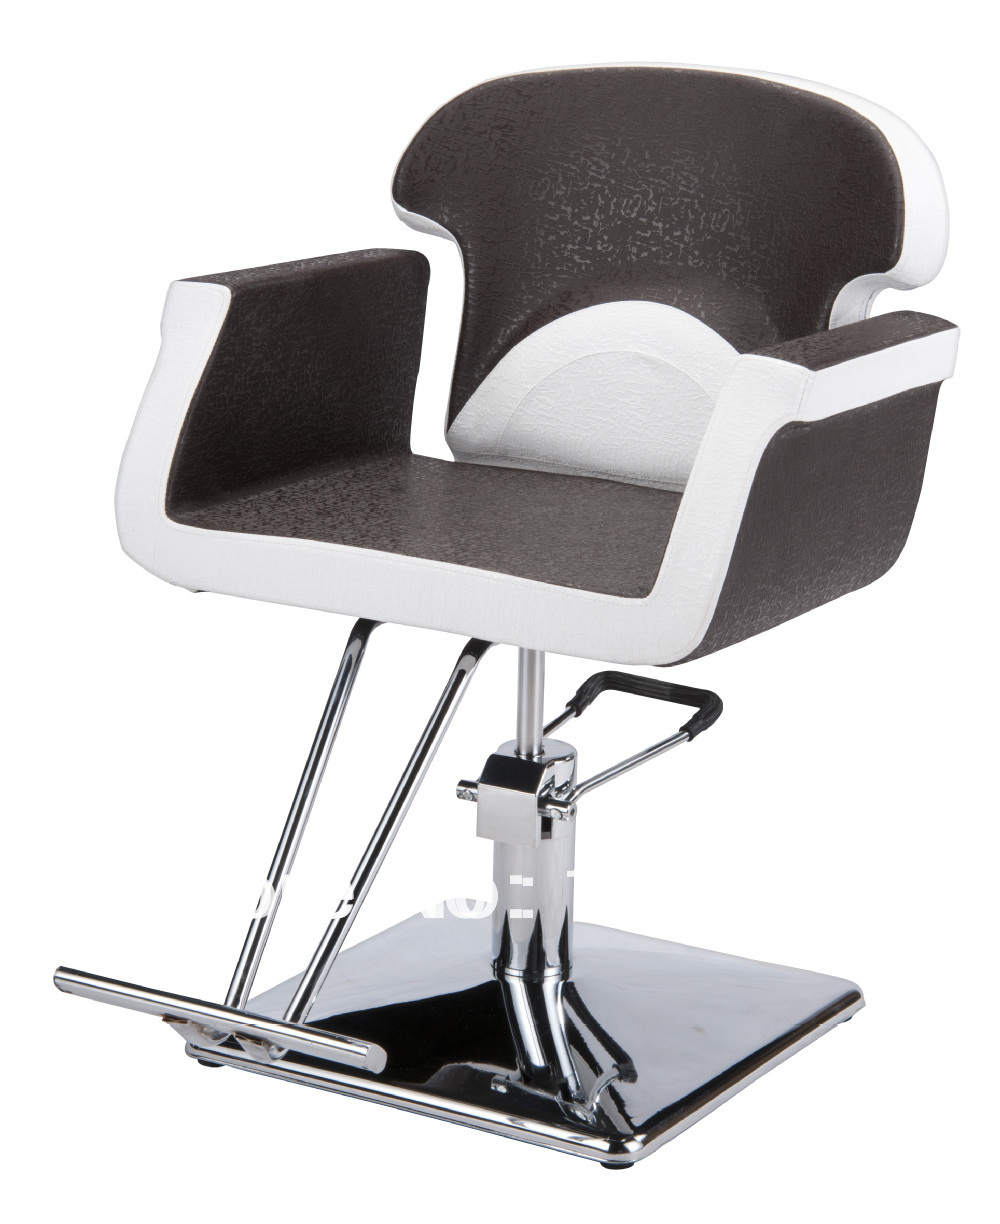 White hair salon chairs - White Hair Salon Chairs Home Design 2017